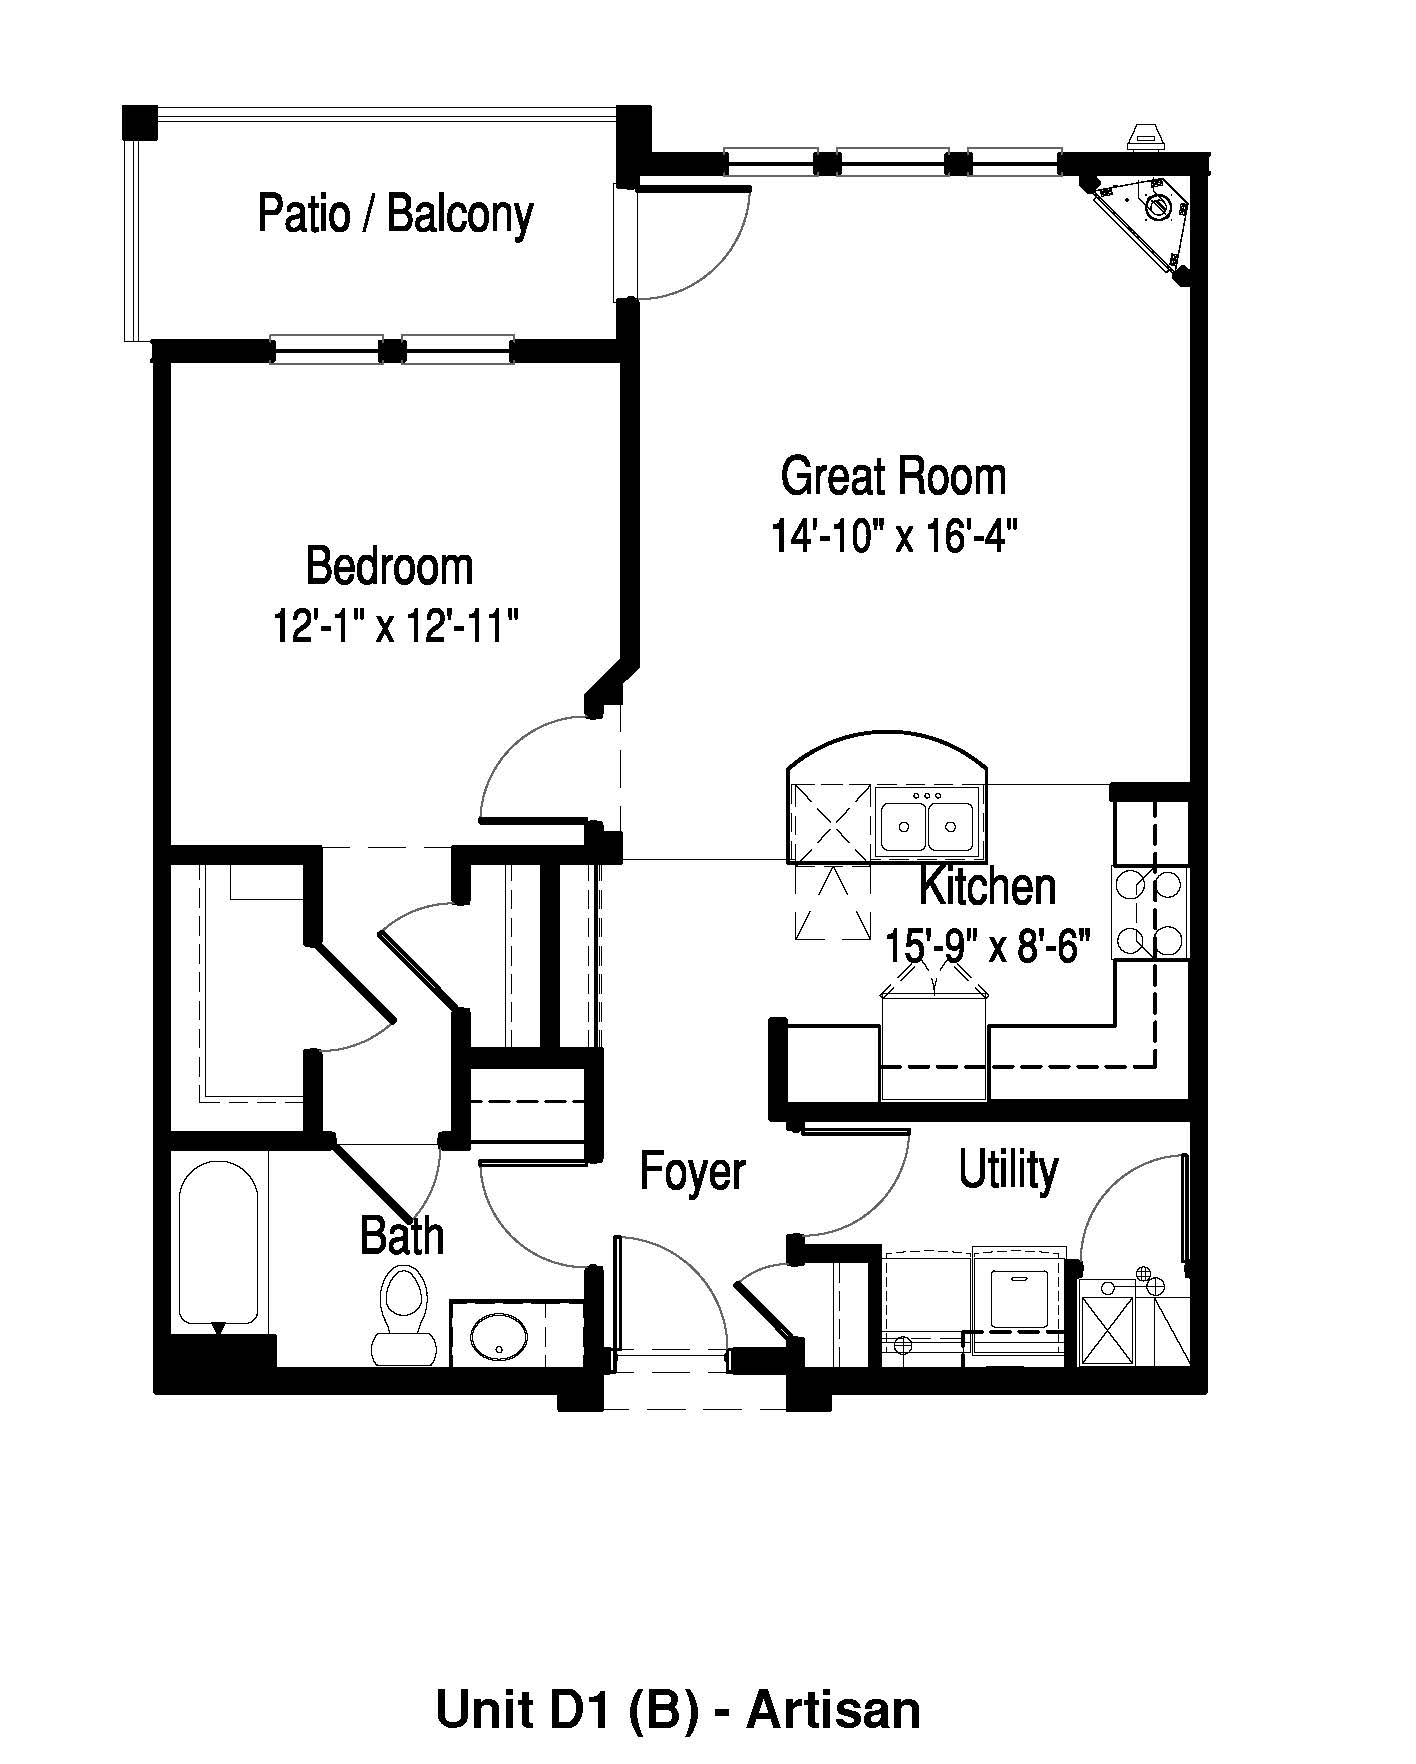 1 Bedroom, 1 Bath - 865 Sq. Ft. - The Artisan at Georgetown Square